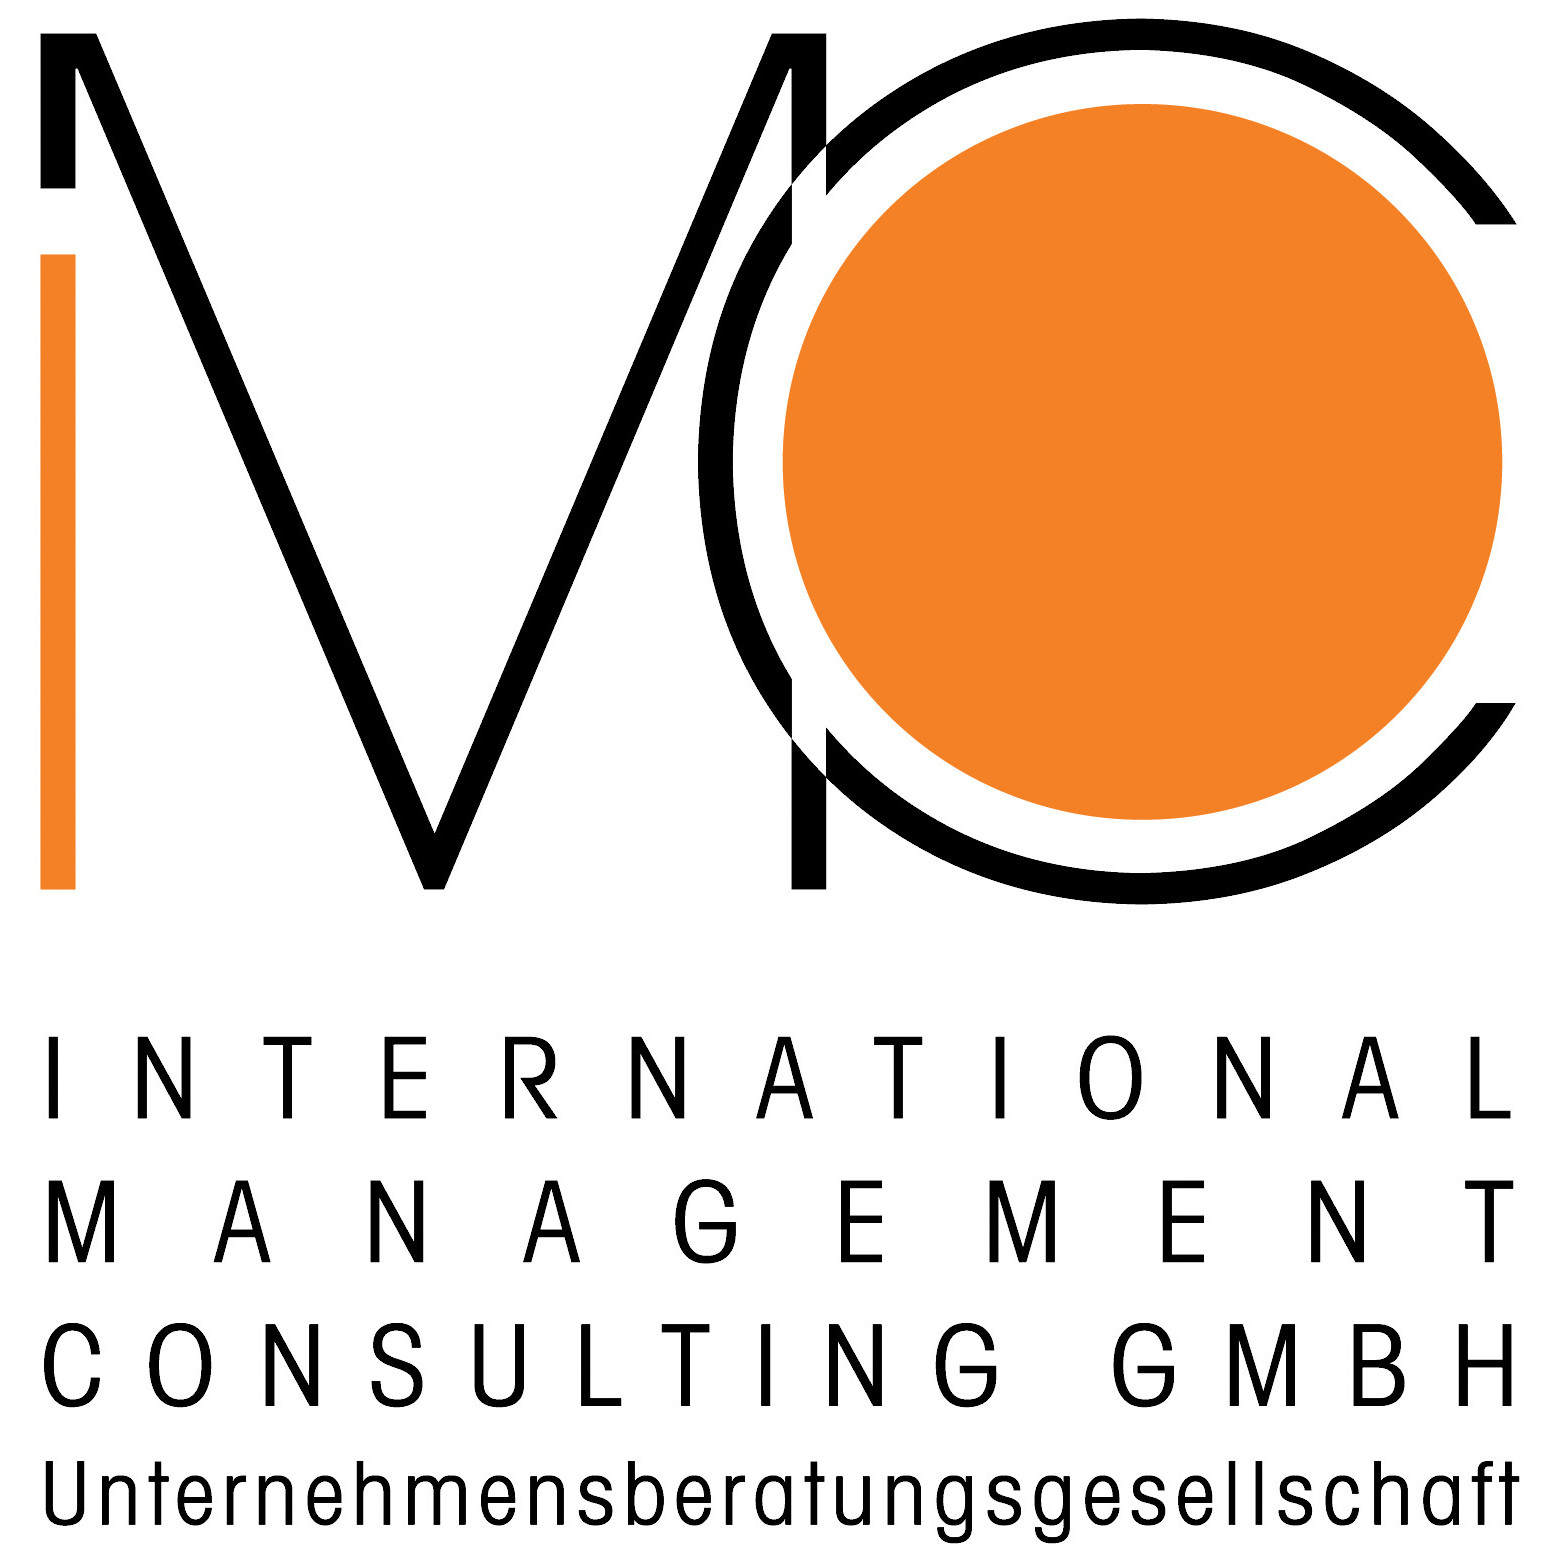 International Management Consulting GmbH